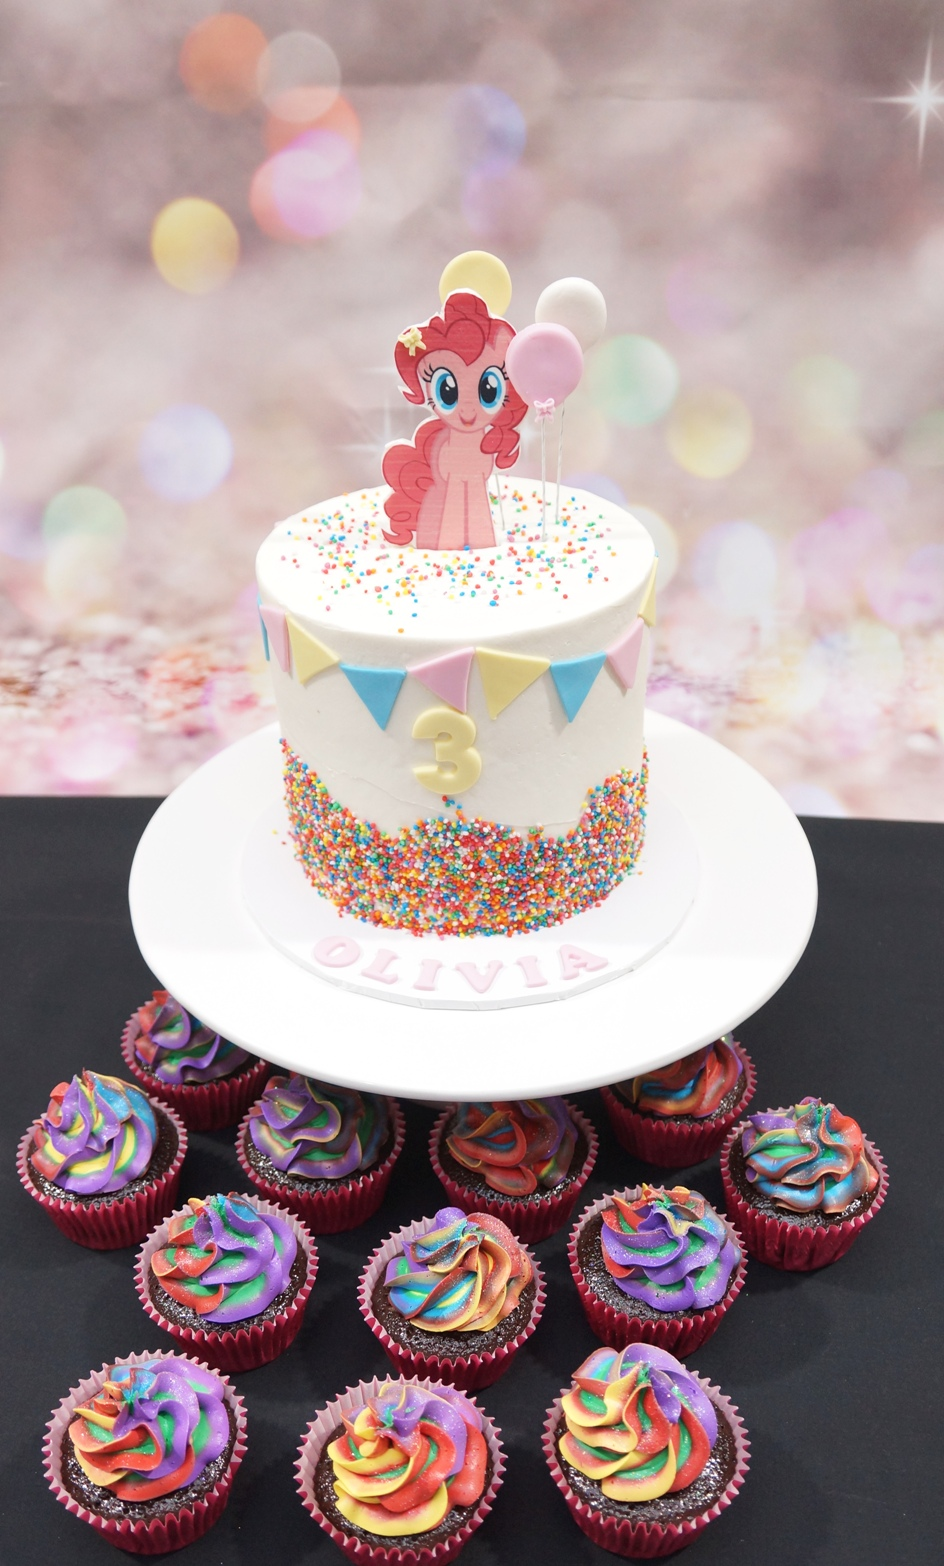 My Little Pony Cake with rainbow cupcake